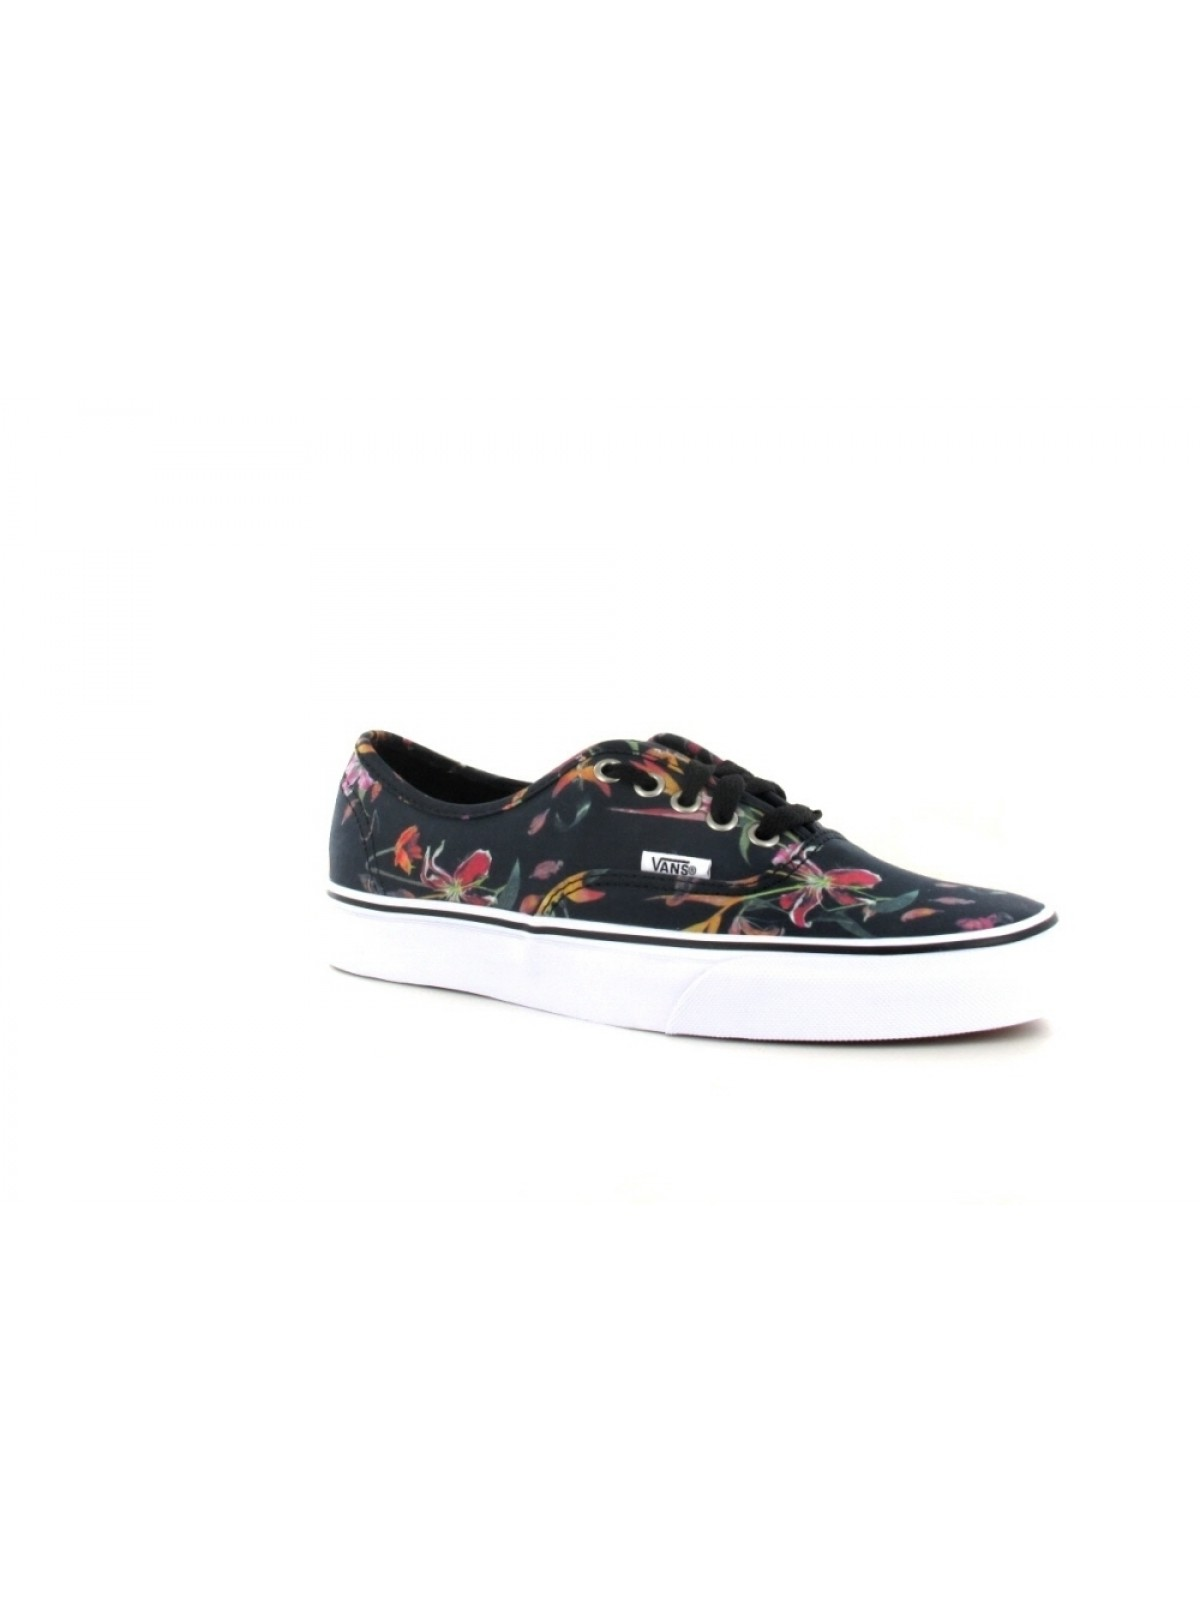 Vans Authentic toile black / bloom